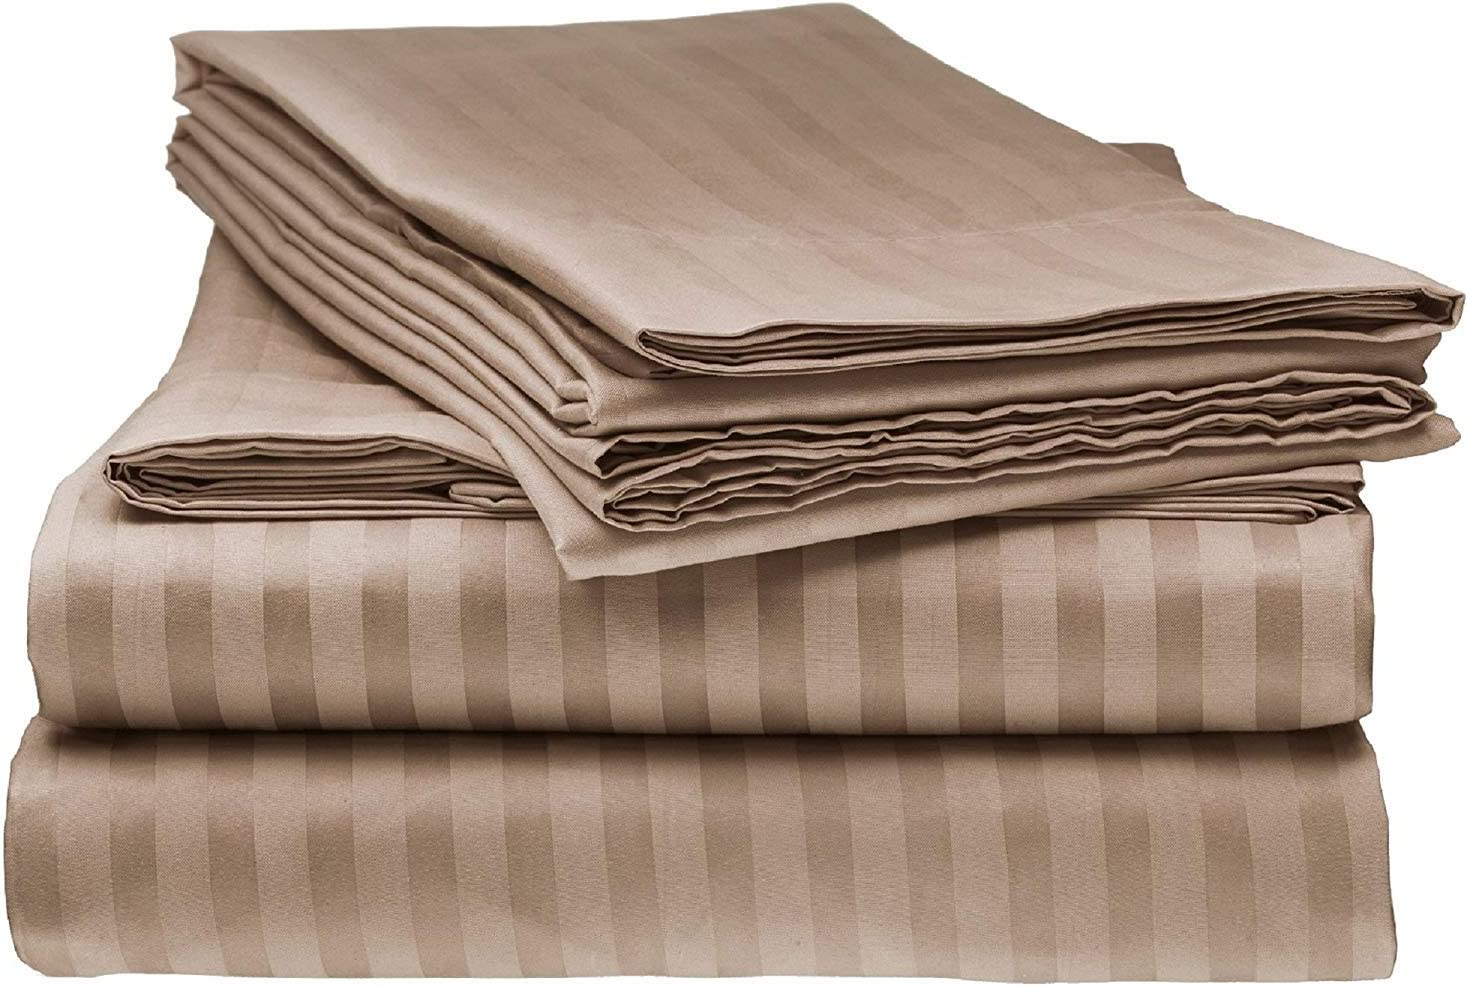 RV Camper-Sheets Set, 4 Piece Set, RV King 72X80 Inches,15